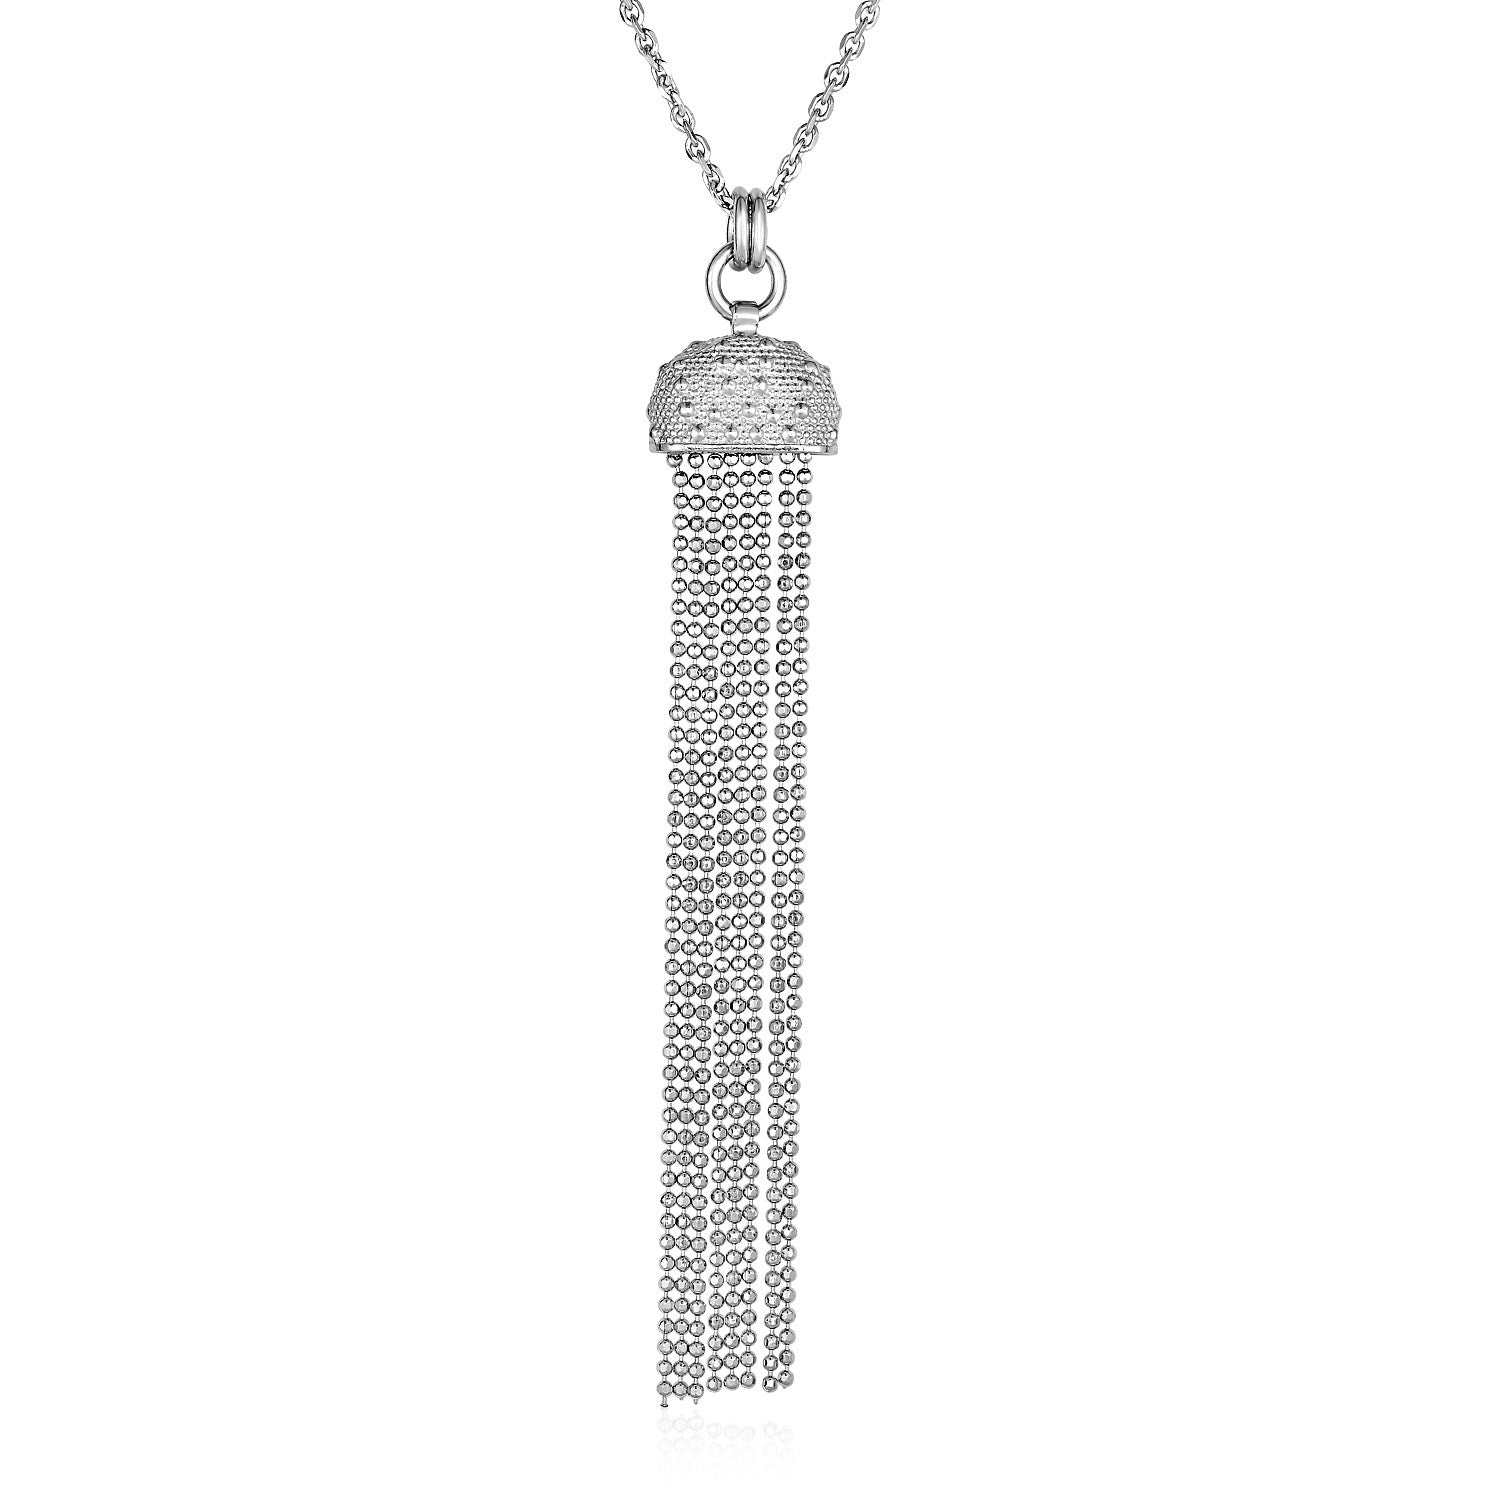 Unique Hollywood Style Necklace with Half Round and Multi Chain Pendant in Sterling Silver